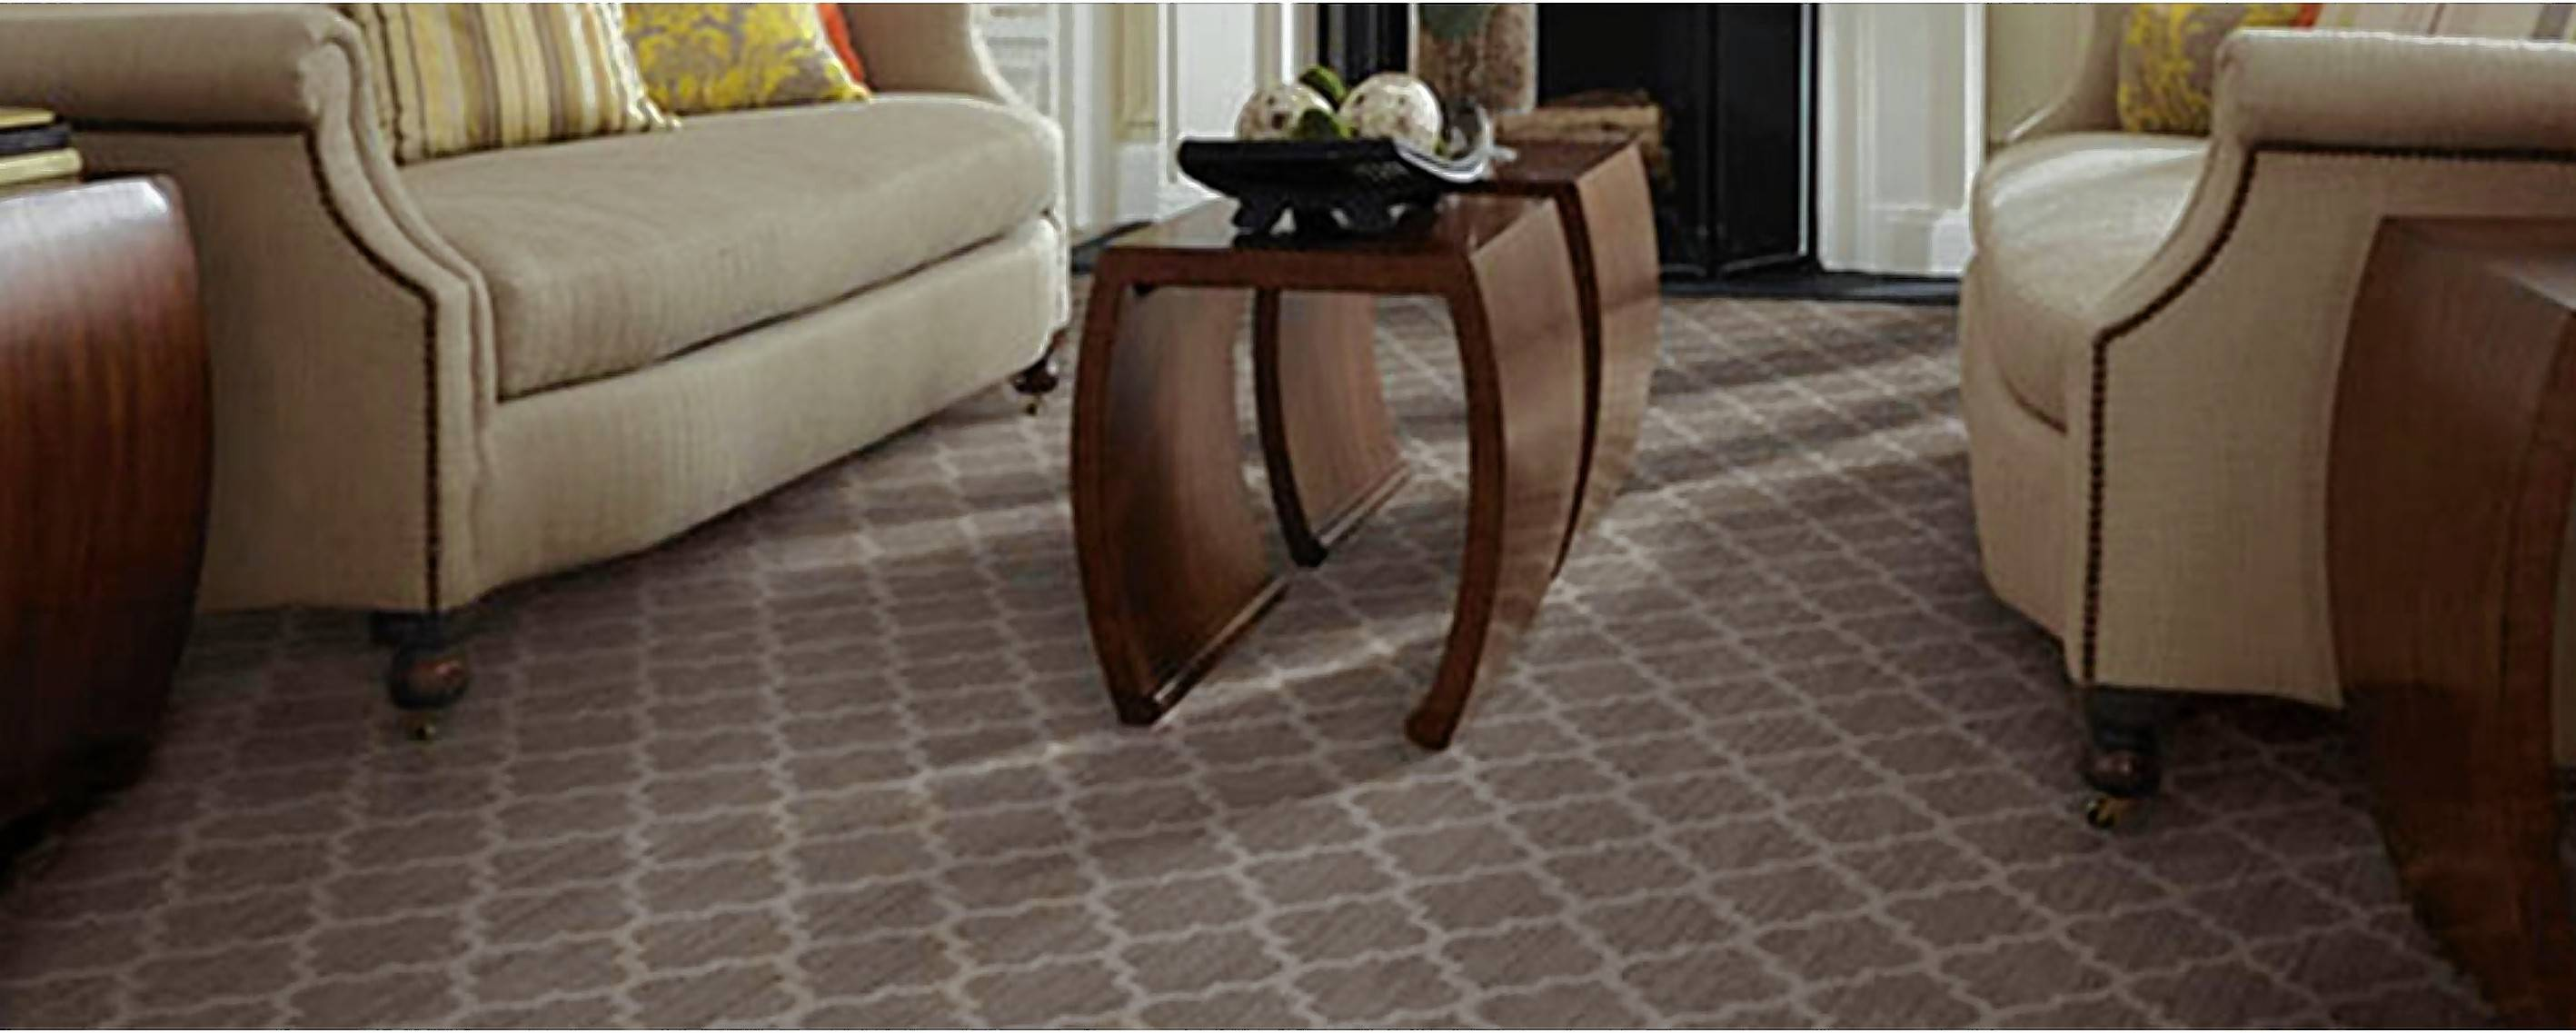 walltowall carpeting comes in a multitude of color and pattern